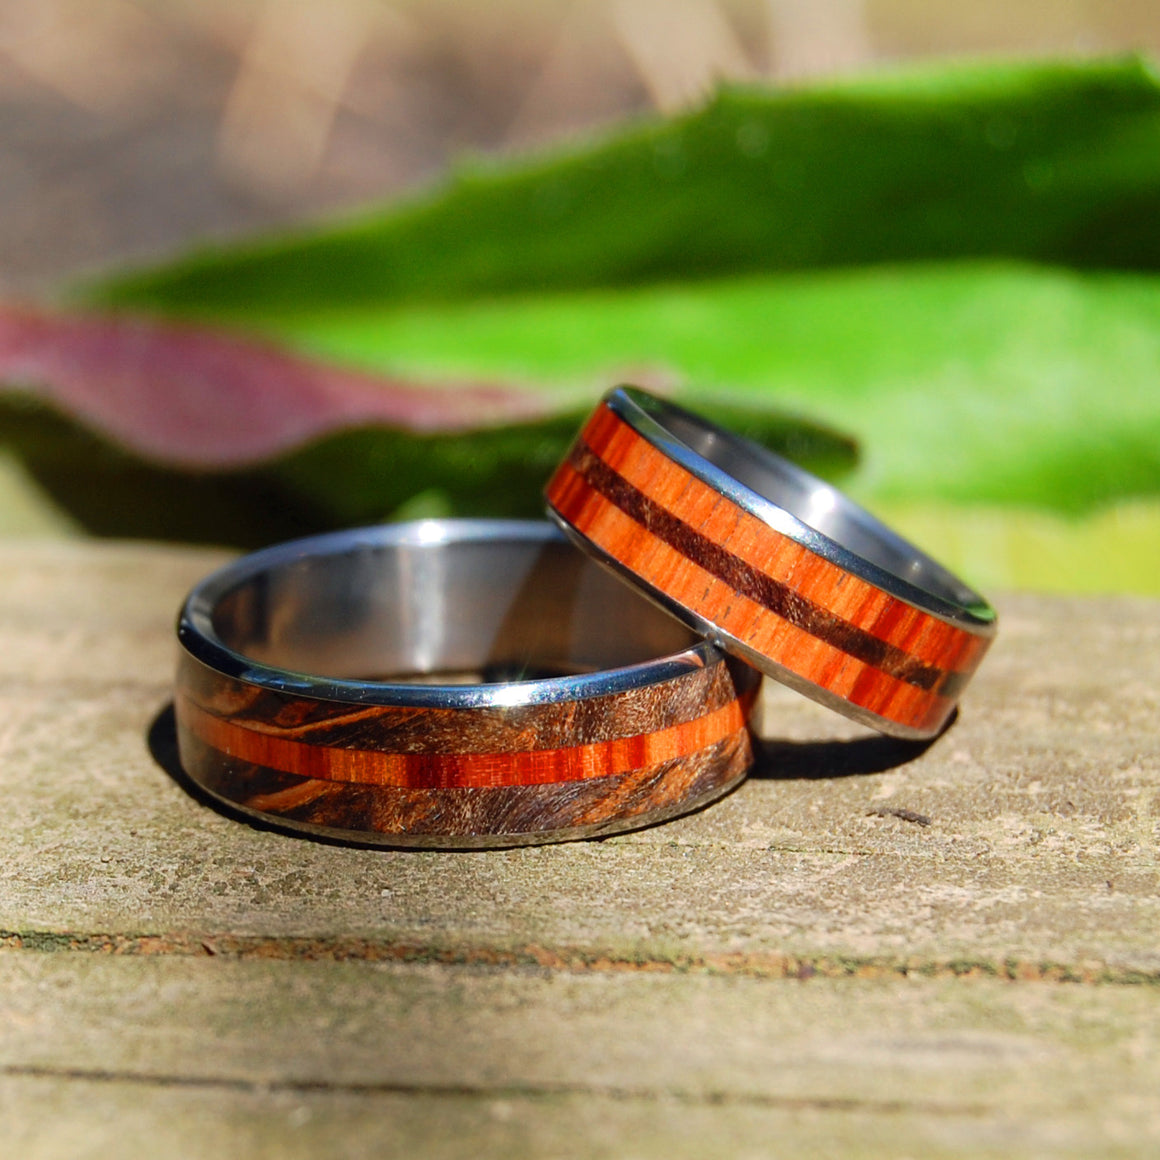 How Quickly I Fell For You Set | Handcrafted Wooden Wedding Ring Set - Minter and Richter Designs